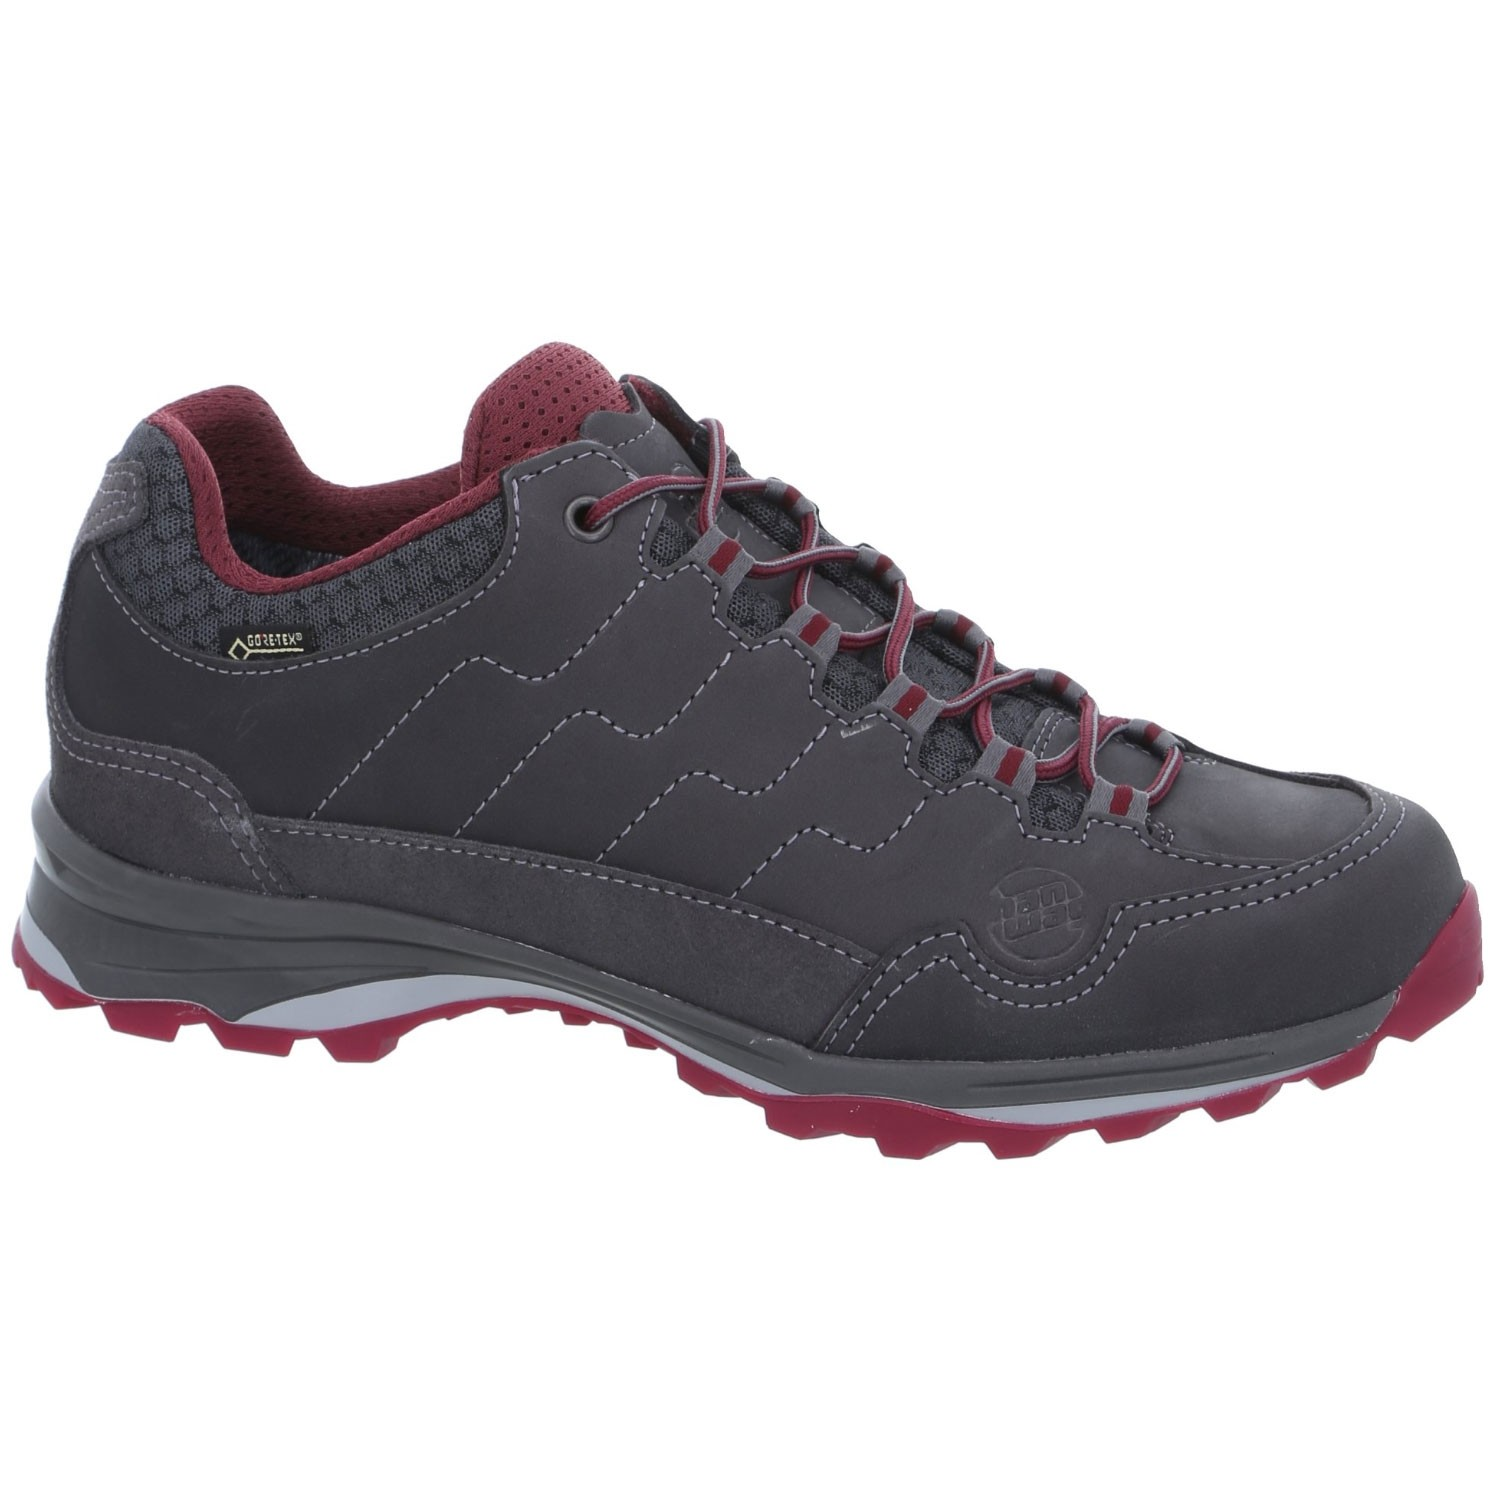 Hanwag Robin Light GTX  Walking Shoe - Asphalt/Dark Garnet